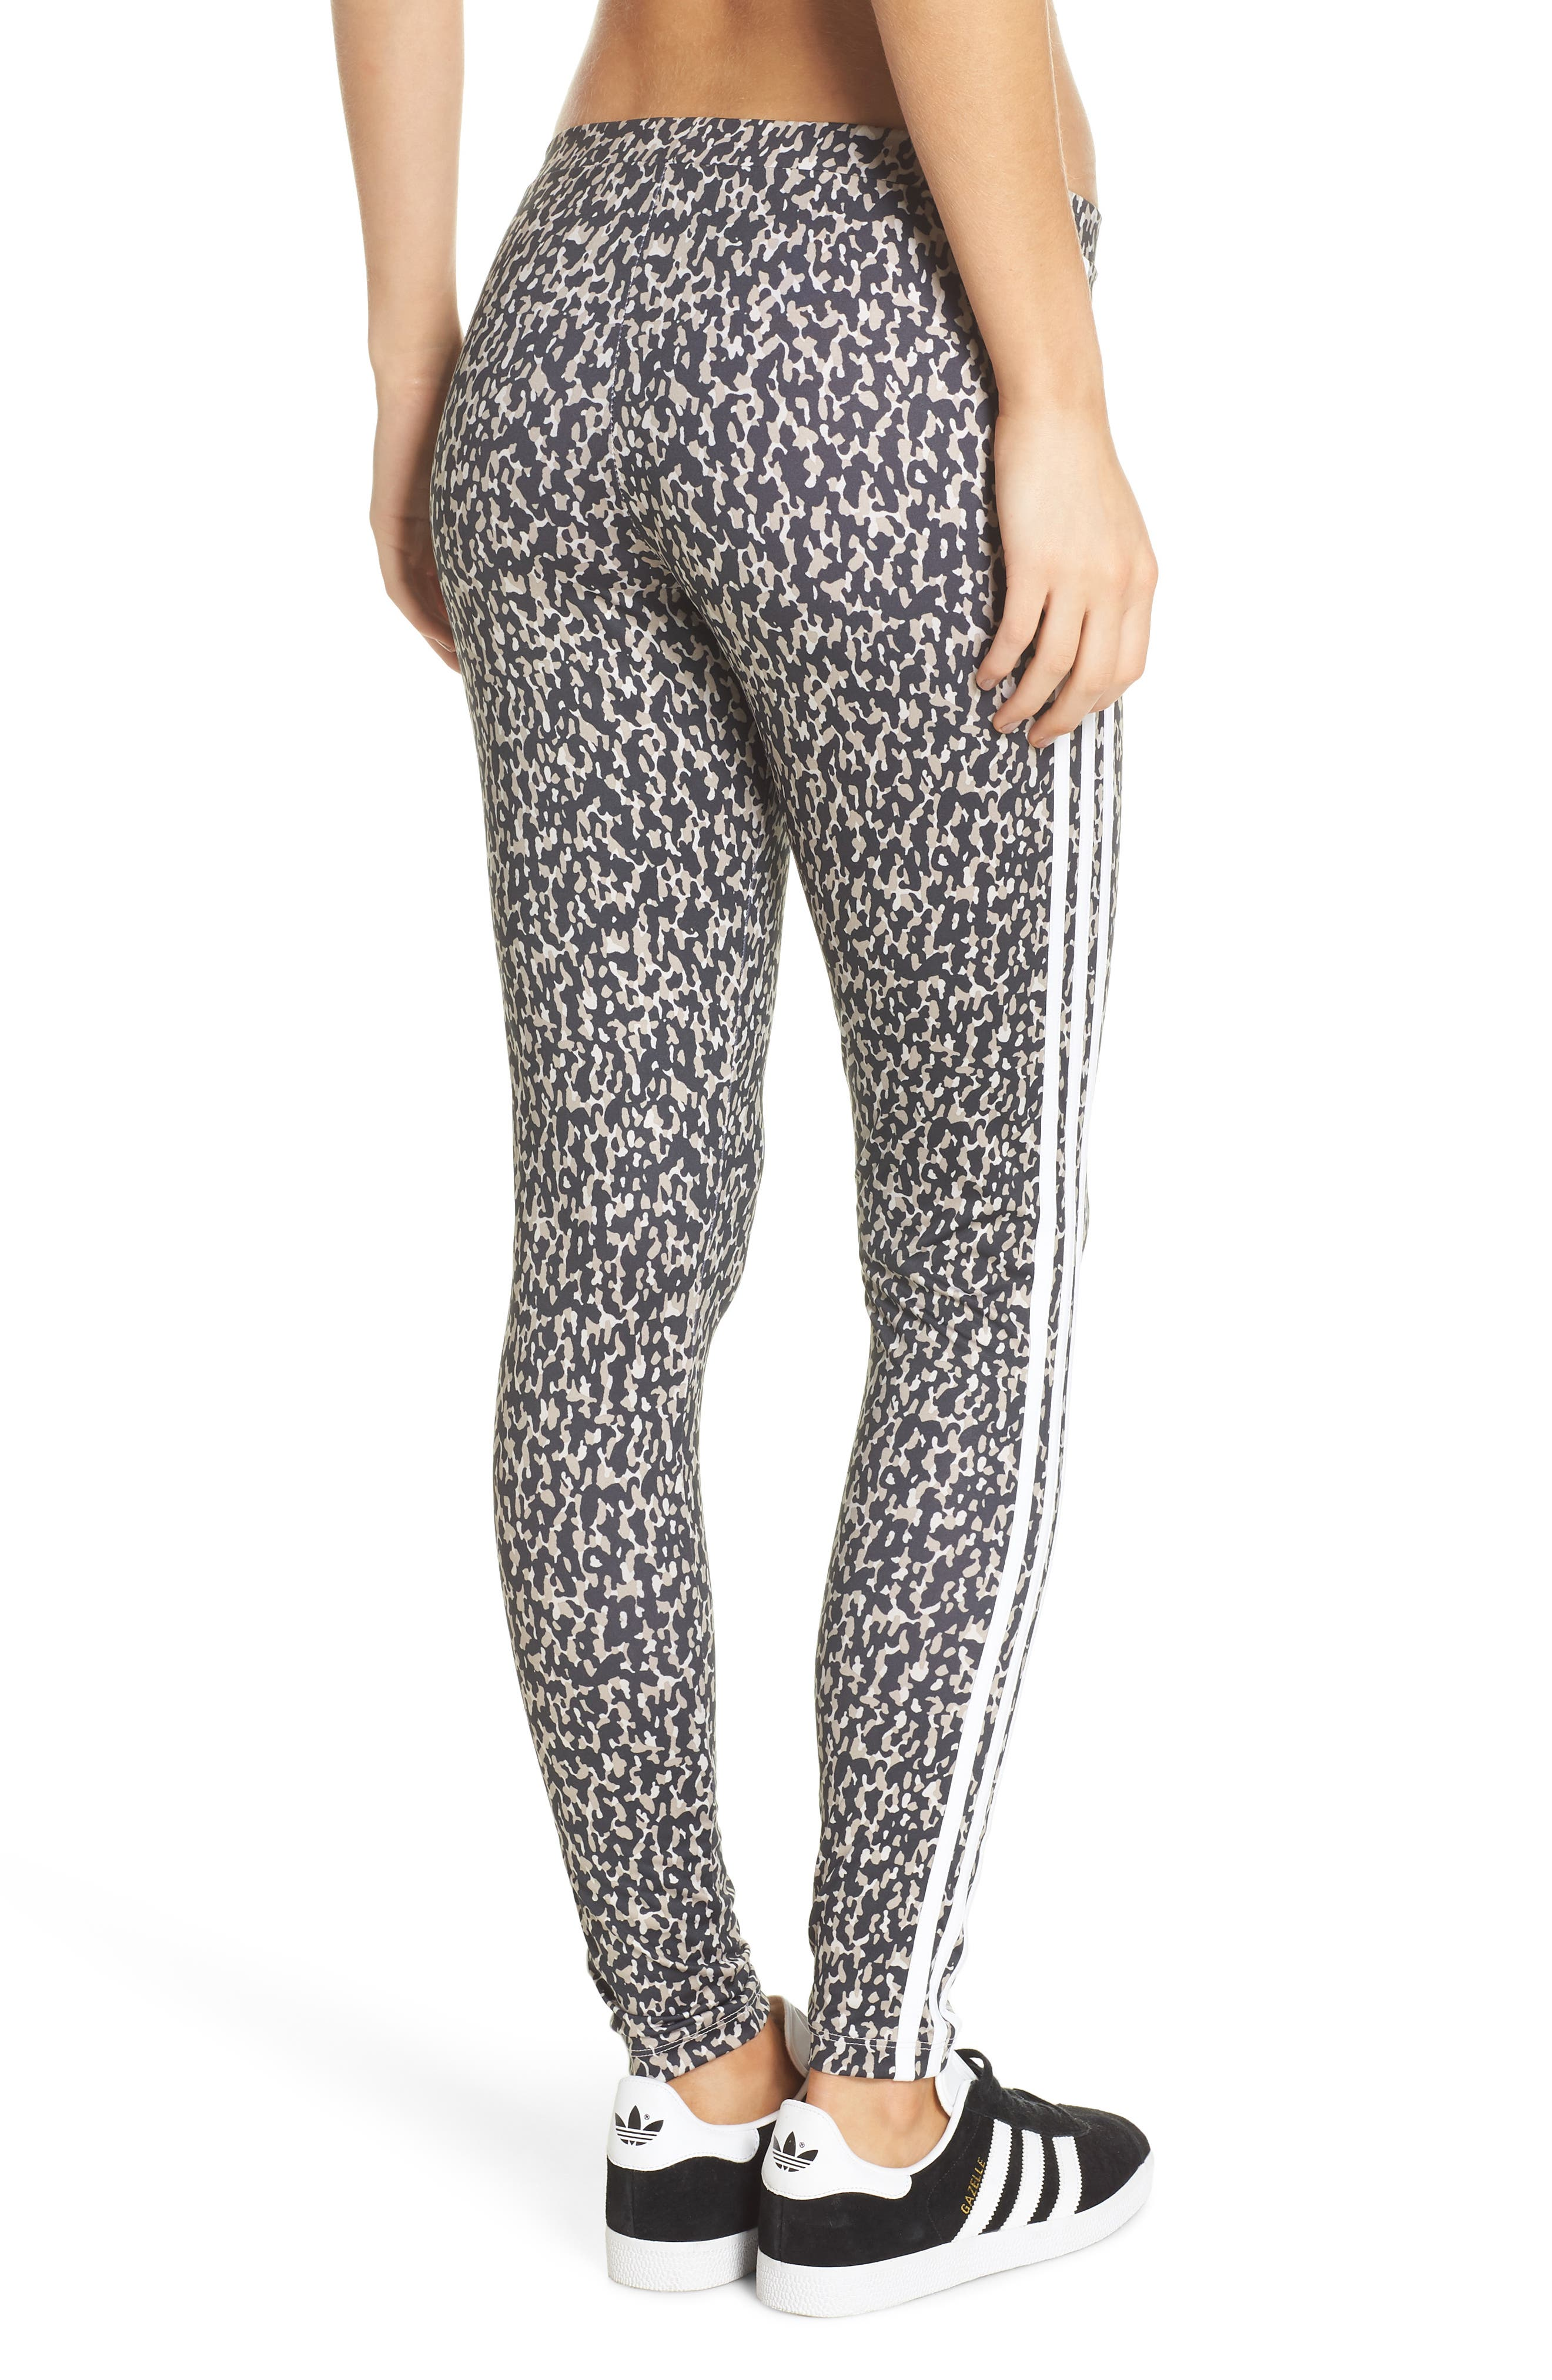 Leopard Camo Leggings,                             Alternate thumbnail 2, color,                             Leoflage Aop